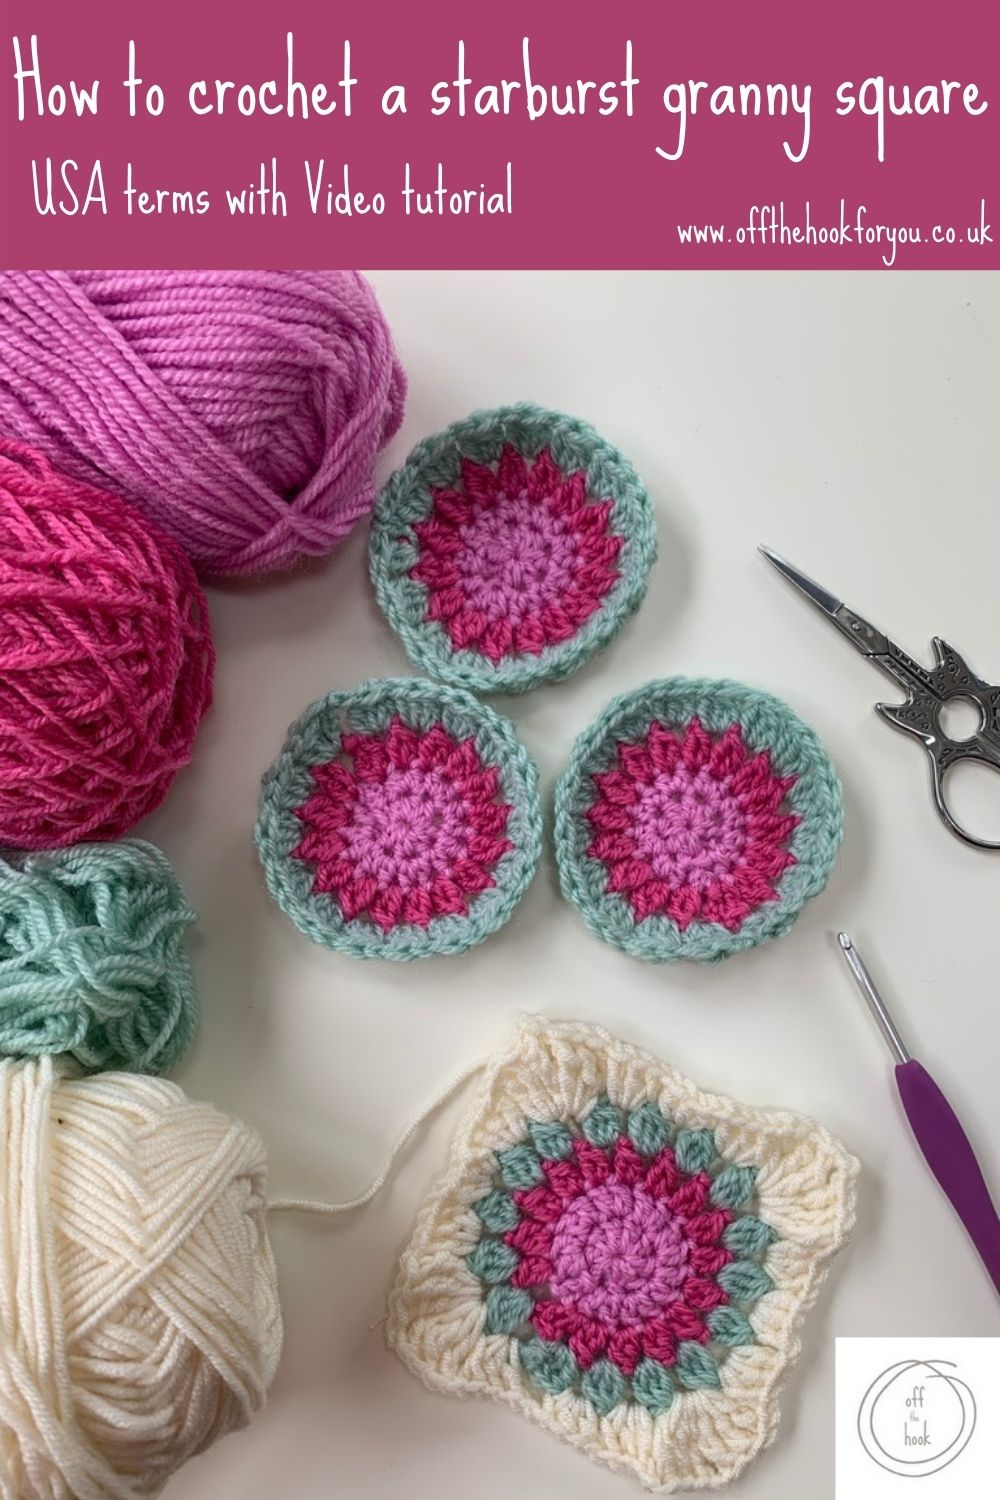 How to crochet a starburst granny square, easy free crochet pattern